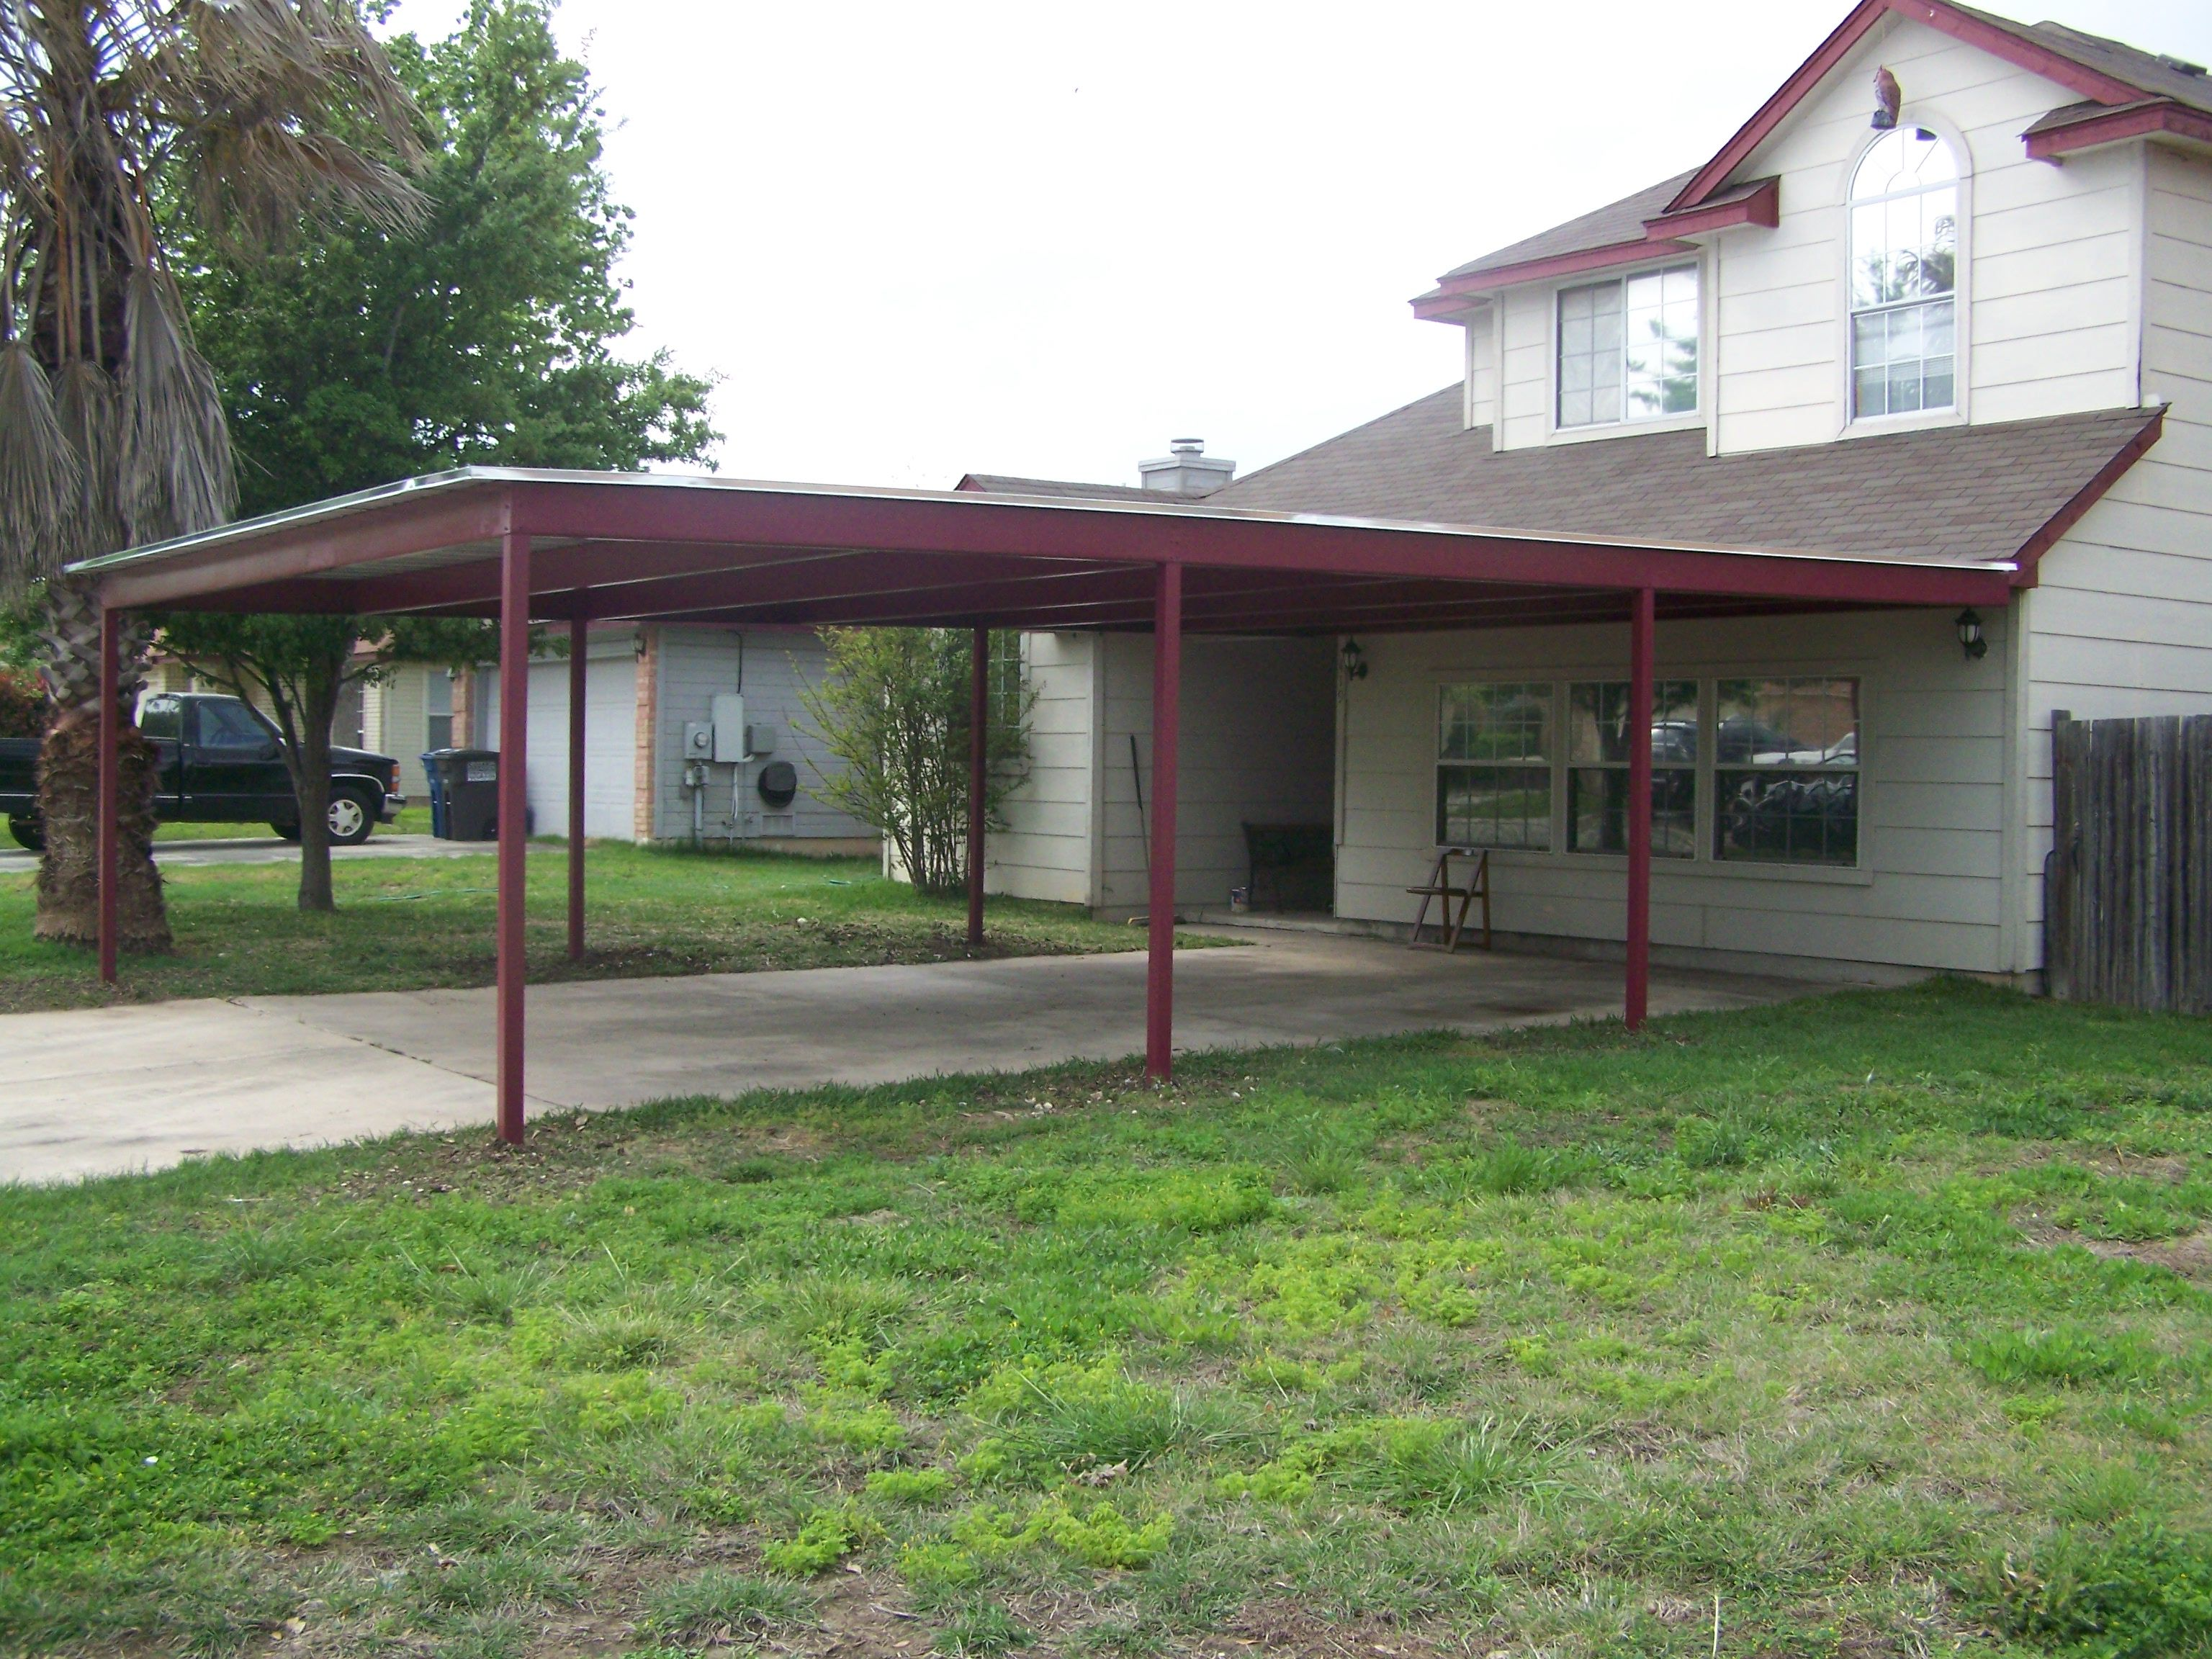 Custom Metal Carport And Porch Addition South San Antonio ... on back yard ponds, back yard shed plans, back yard courtyard ideas, back yard storage ideas, back yard corner lot ideas, back yard lounge ideas, back yard decks ideas, back yard bbq ideas, back yard hot tub ideas, back yard fountain ideas, back yard pergola ideas, back yard garden ideas, back yard fence ideas, back yard compost bin ideas, back yard spa ideas, back yard inground swimming pool ideas,